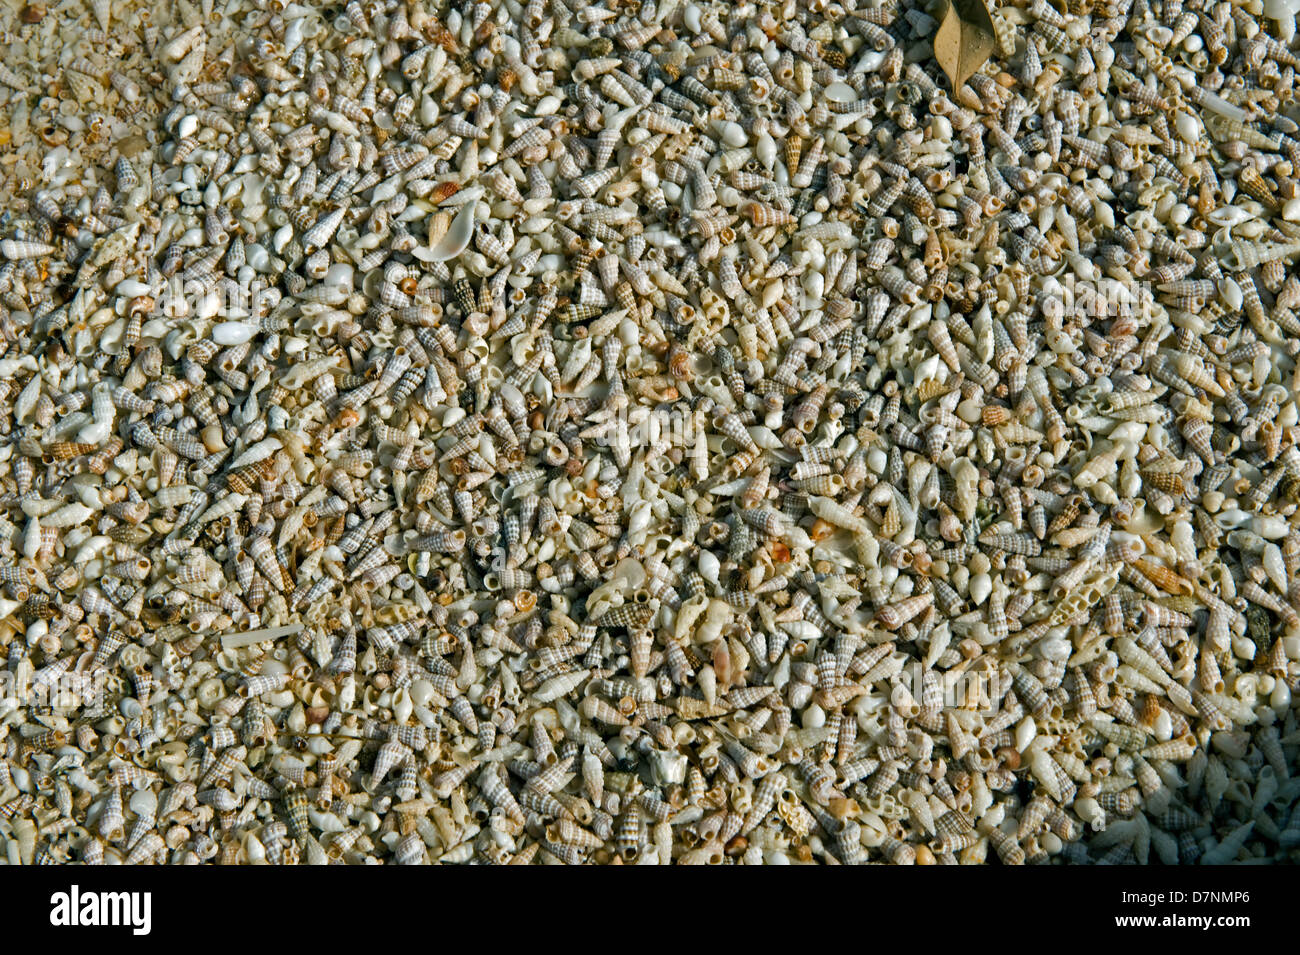 Beach with larger numbers of small sea shells, Abu Dhabi, United Arab Emirates - Stock Image